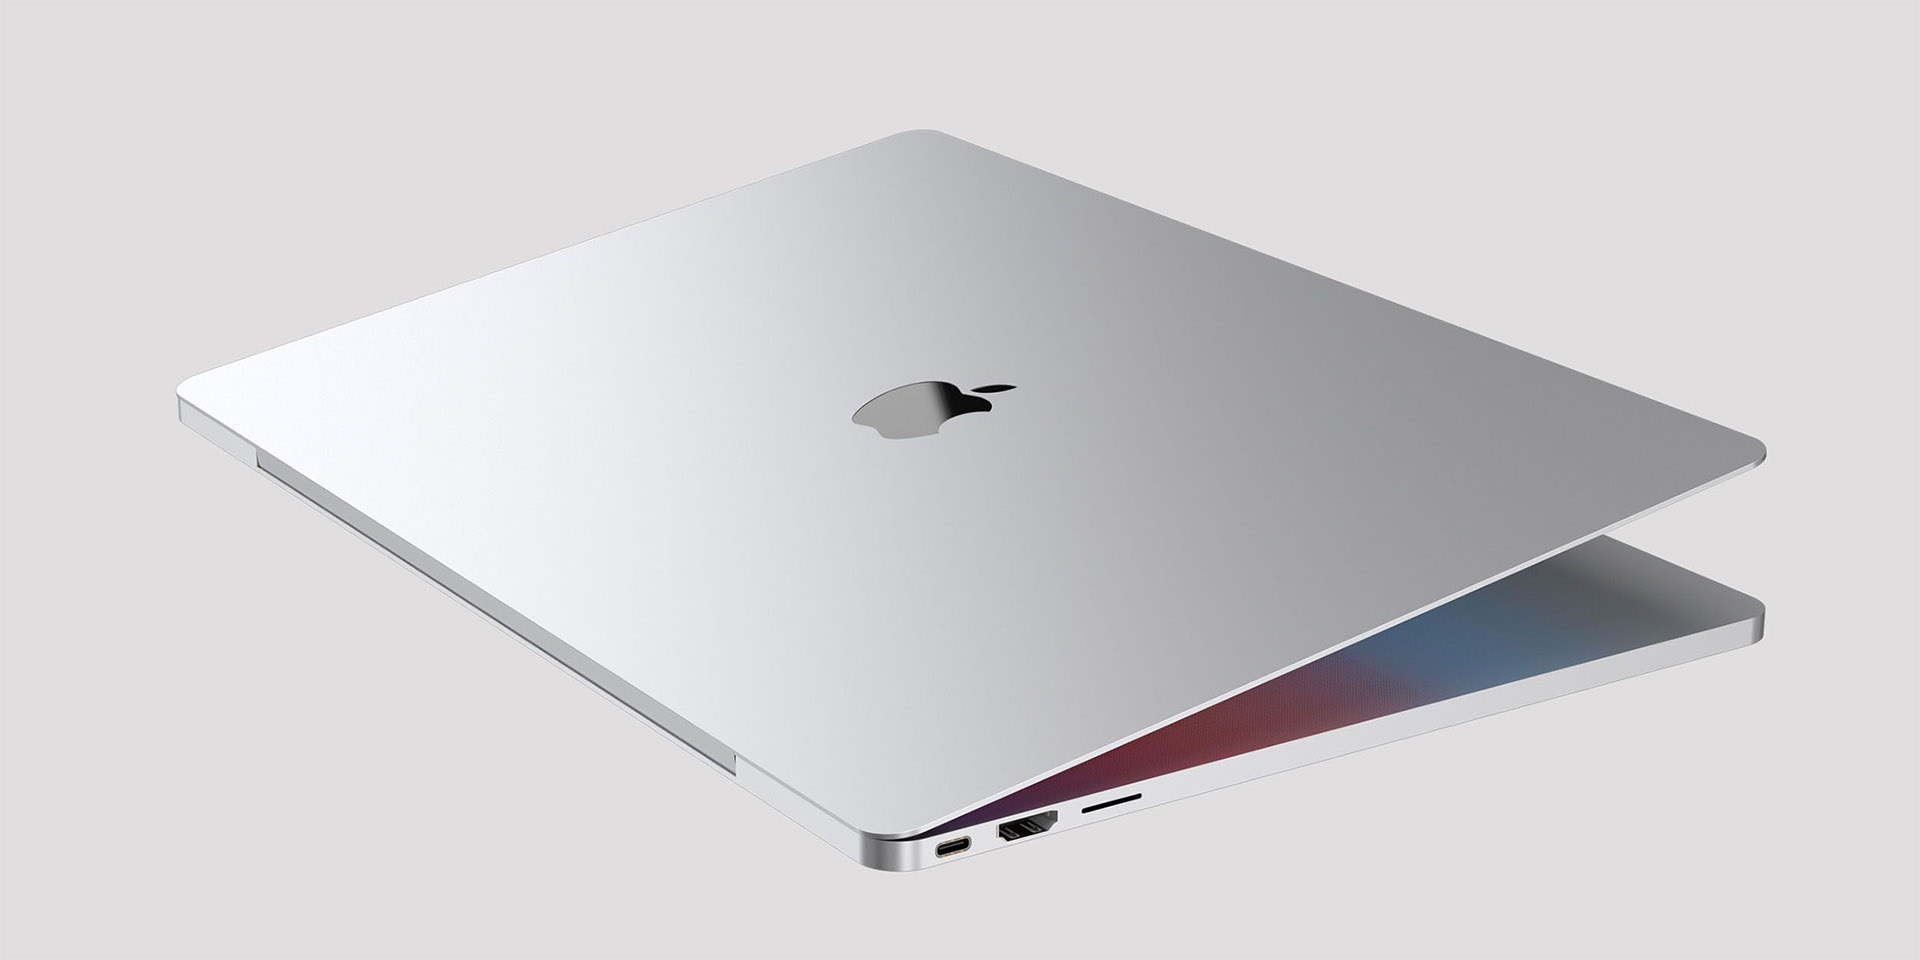 M1X MacBook Pro Models Will Start at 16GB RAM and 512GB Storage With 1080p  Webcam